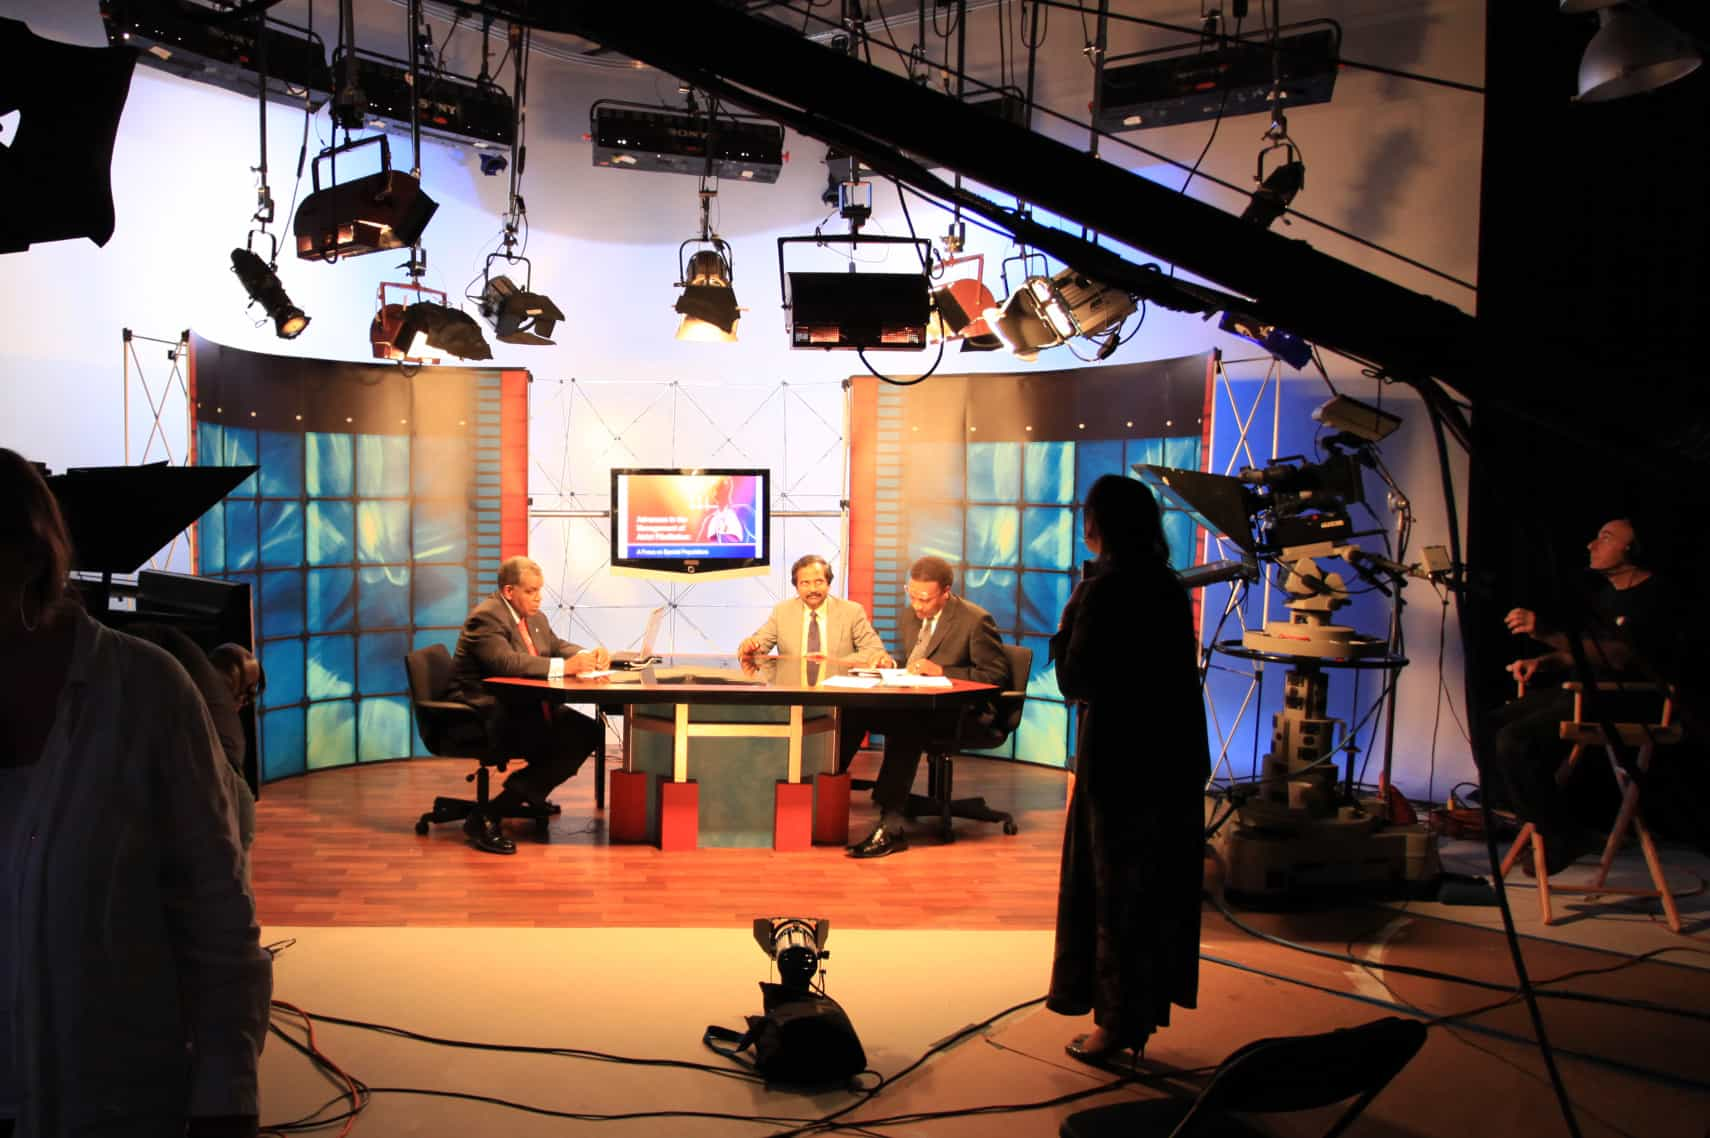 Preparing for a live webcast around a round table discussion set in a television studio